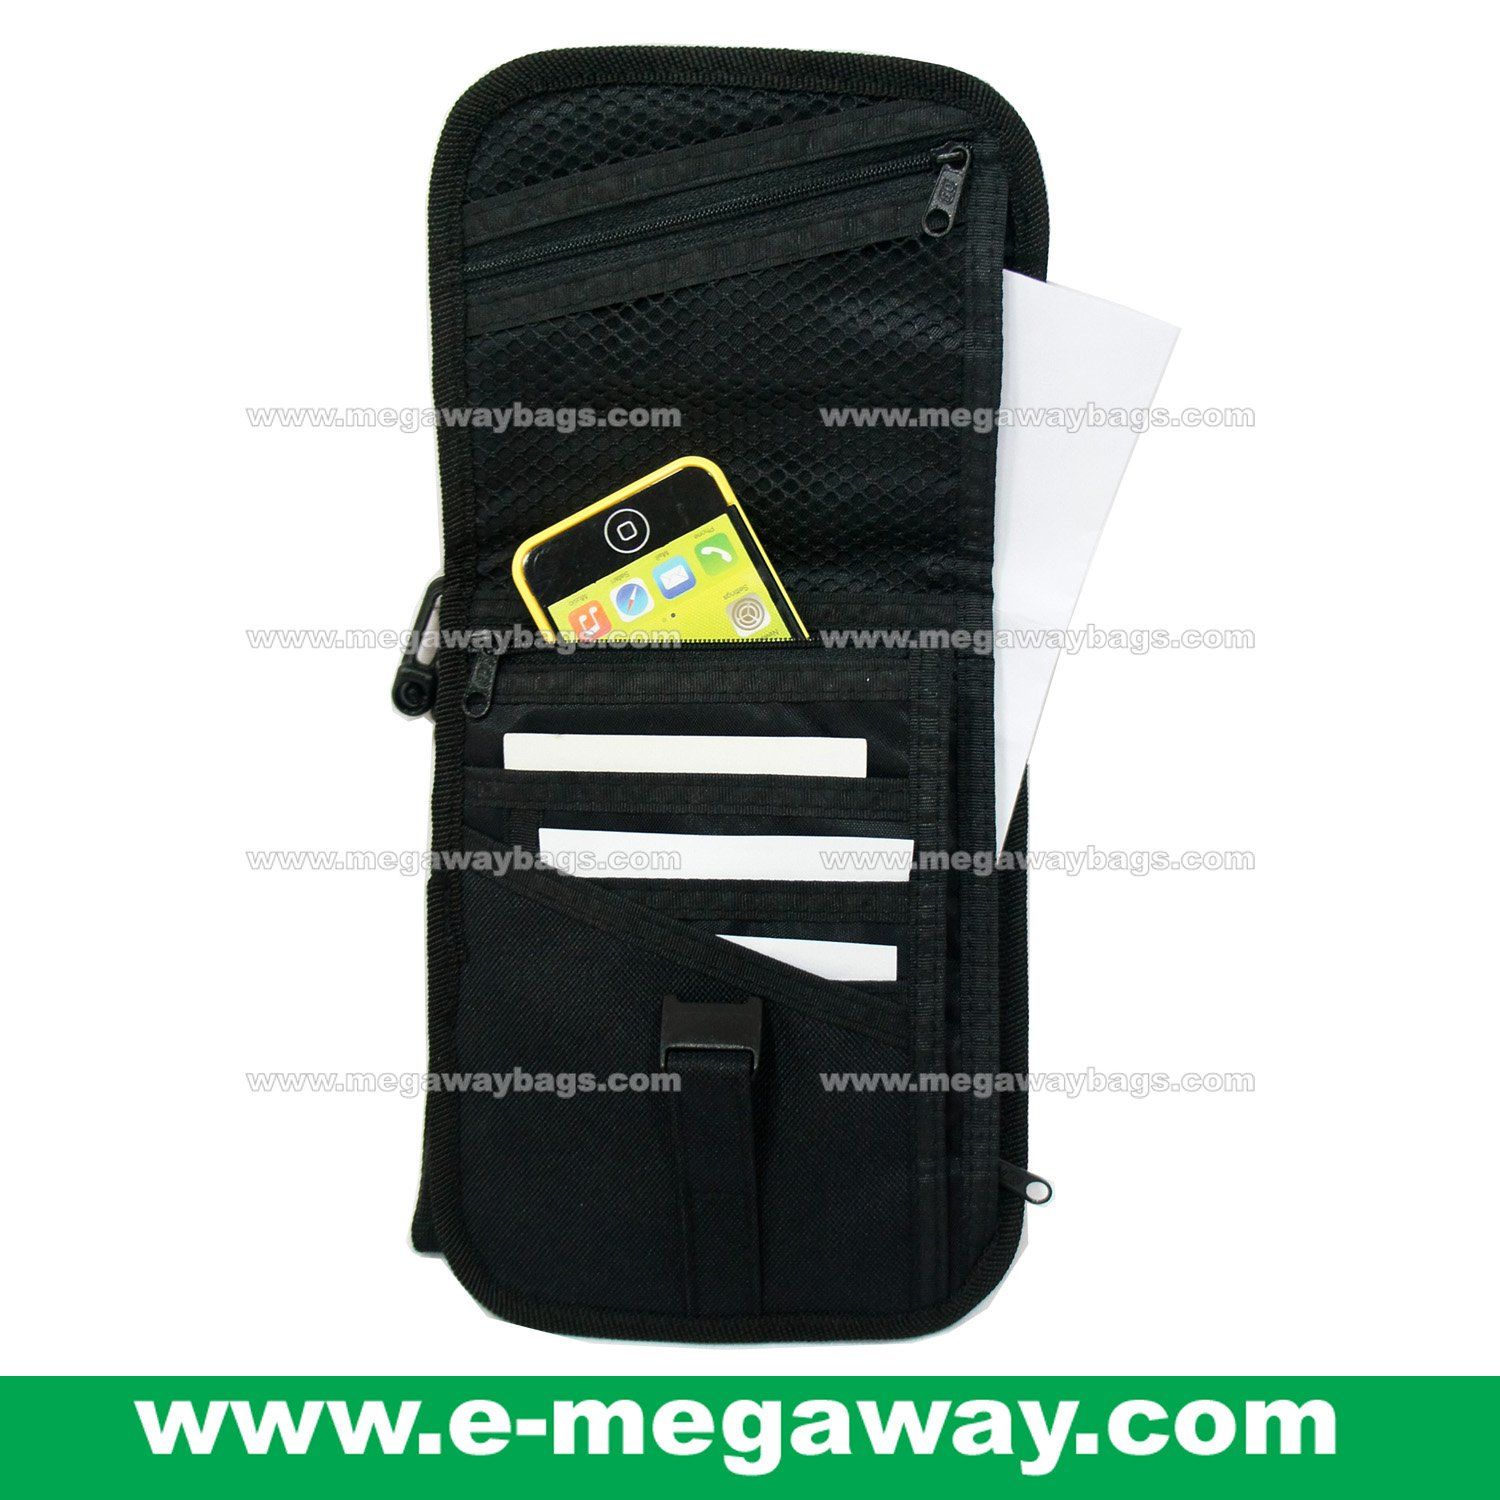 GO Travel Wallets Money Bank Cards Airline Tickets Passport Holders Sac MegawayBags #CC-0851